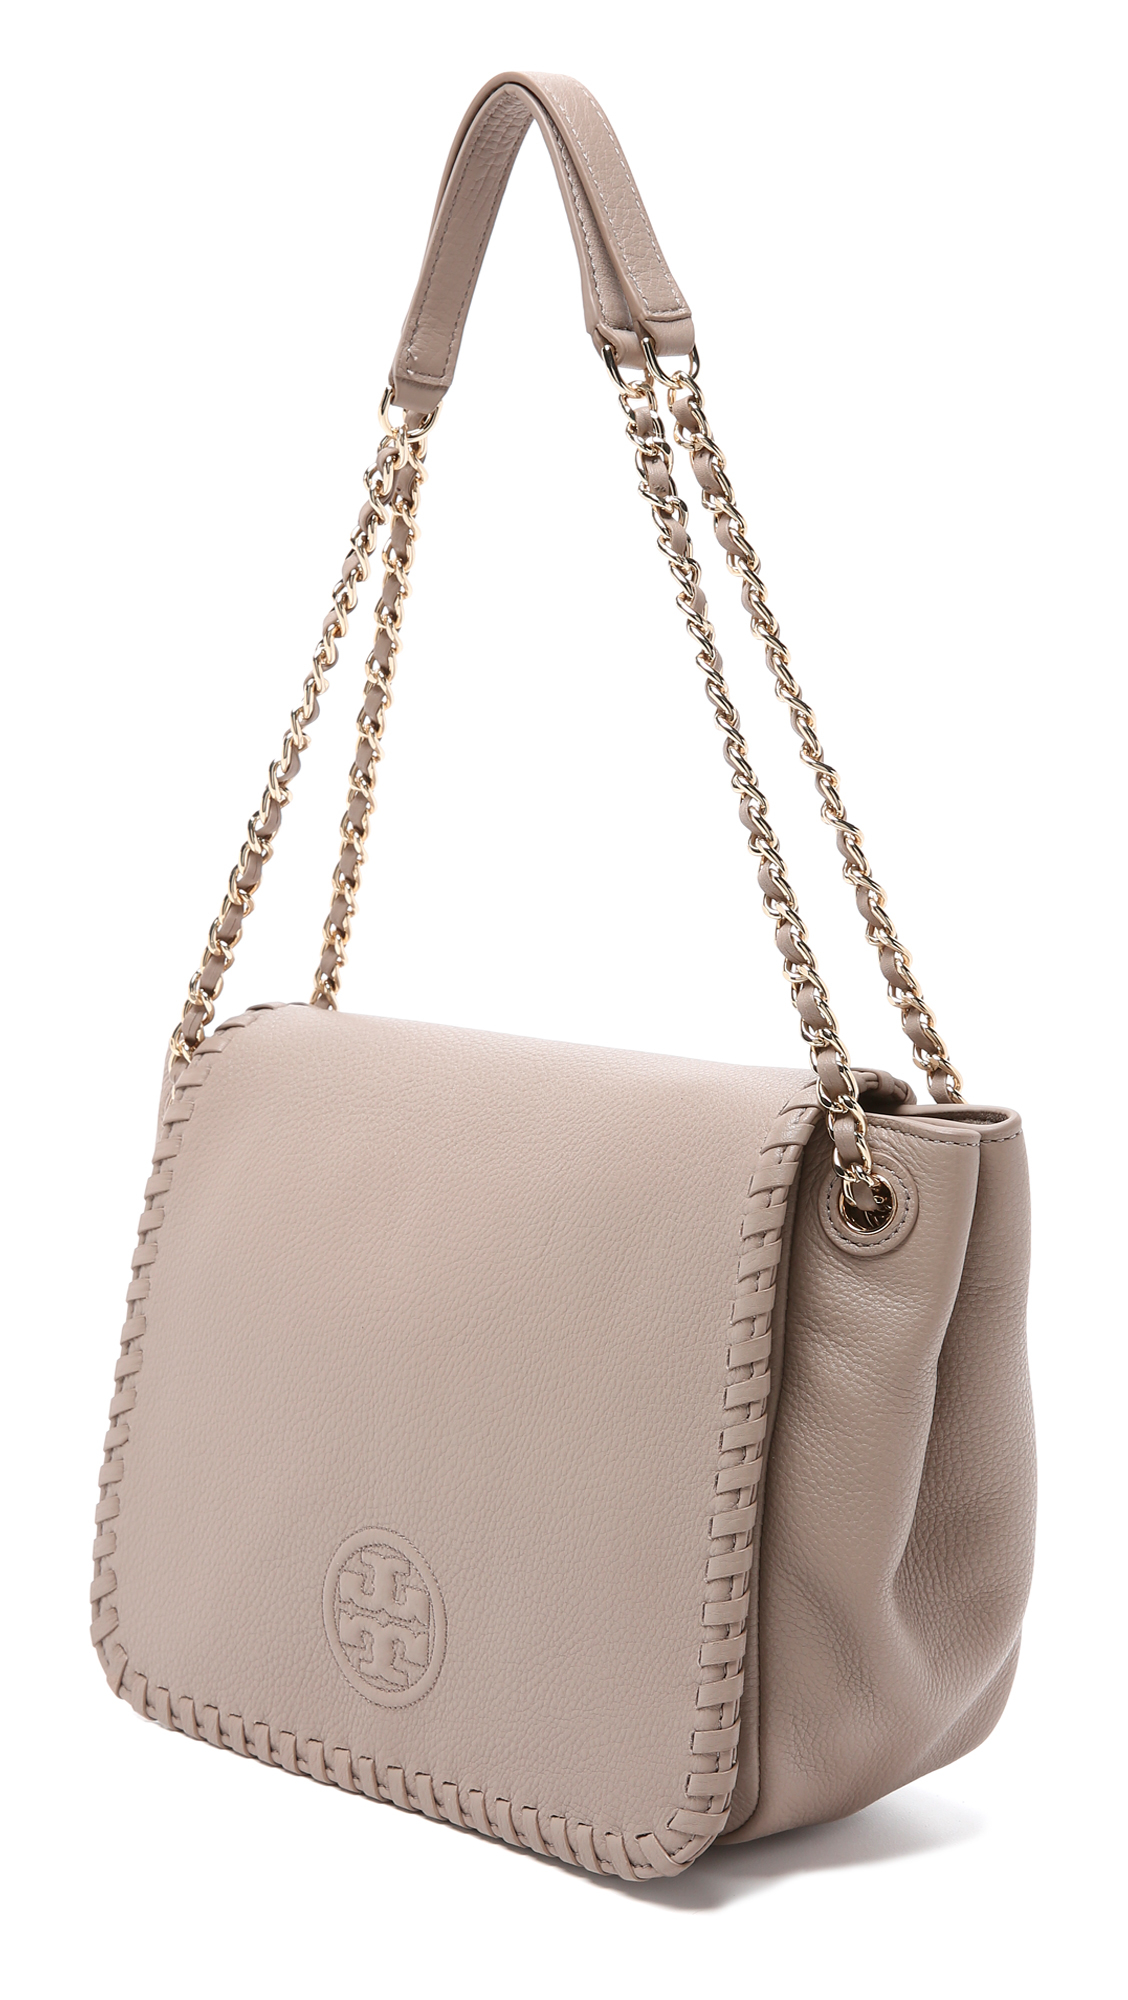 74e24773ab2 ... cheap lyst tory burch marion small flap shoulder bag french gray in  gray 6c69c 90cf1